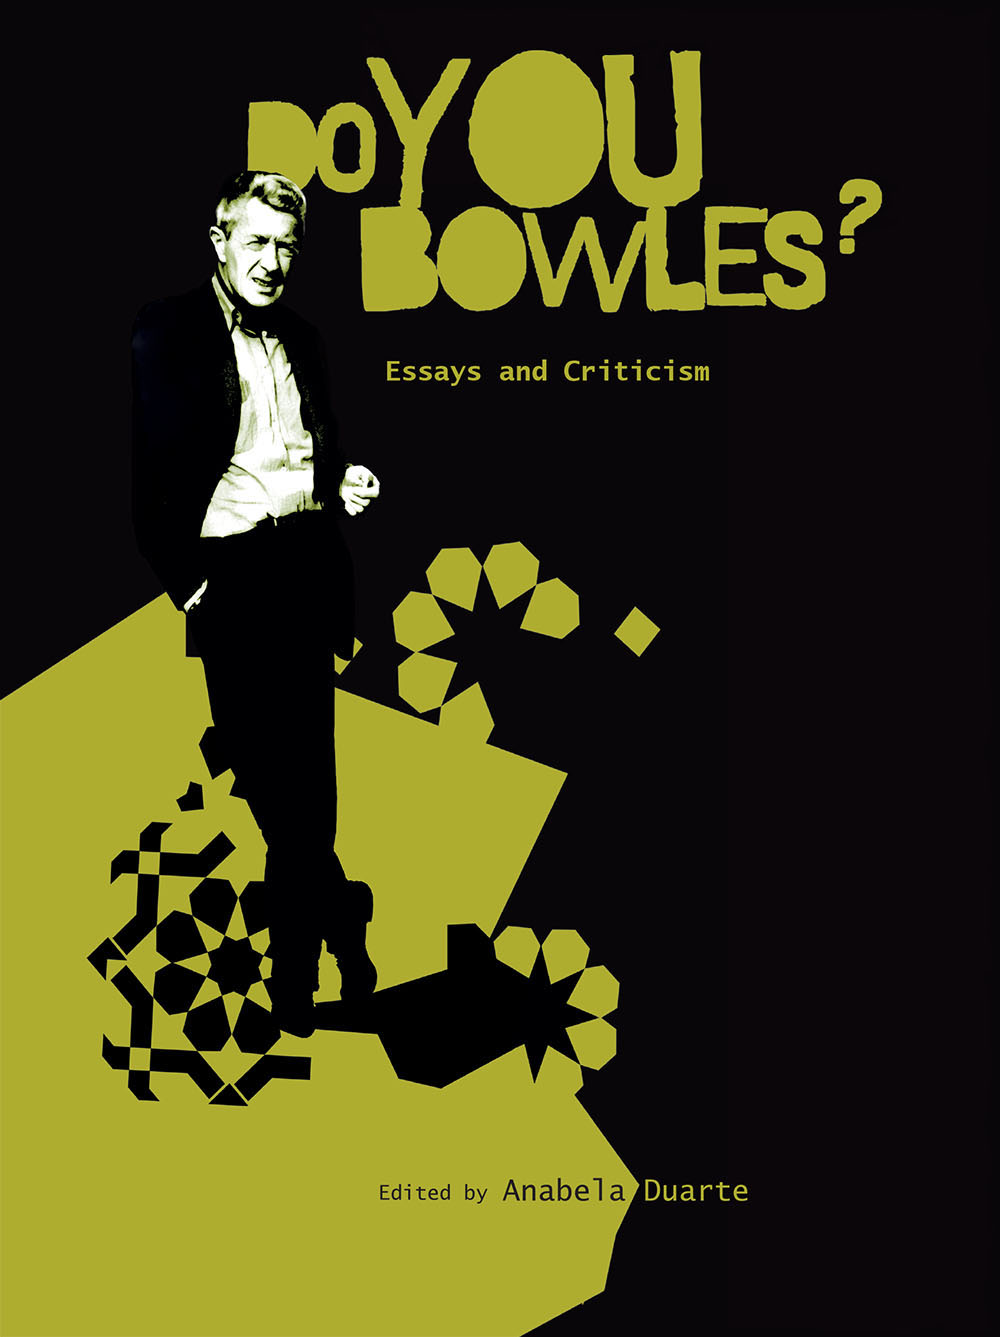 I need a dissertation question about Orwell, a question about the boundaries between literature and journalism?